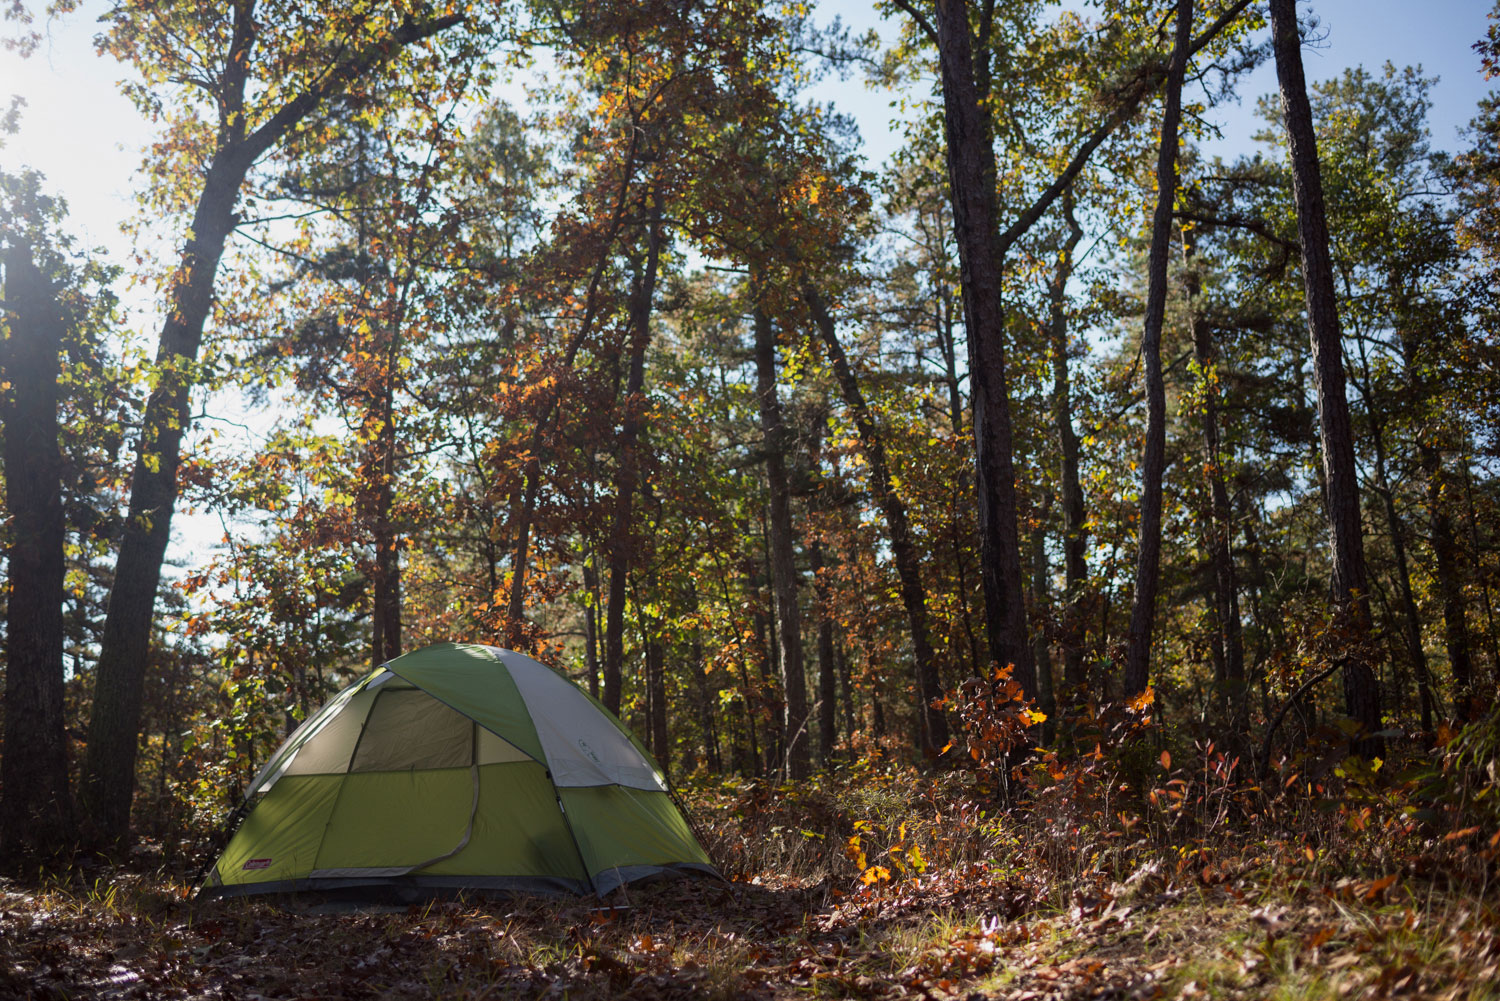 Camping in the Pine Barrens - Pinelands Preservation Alliance